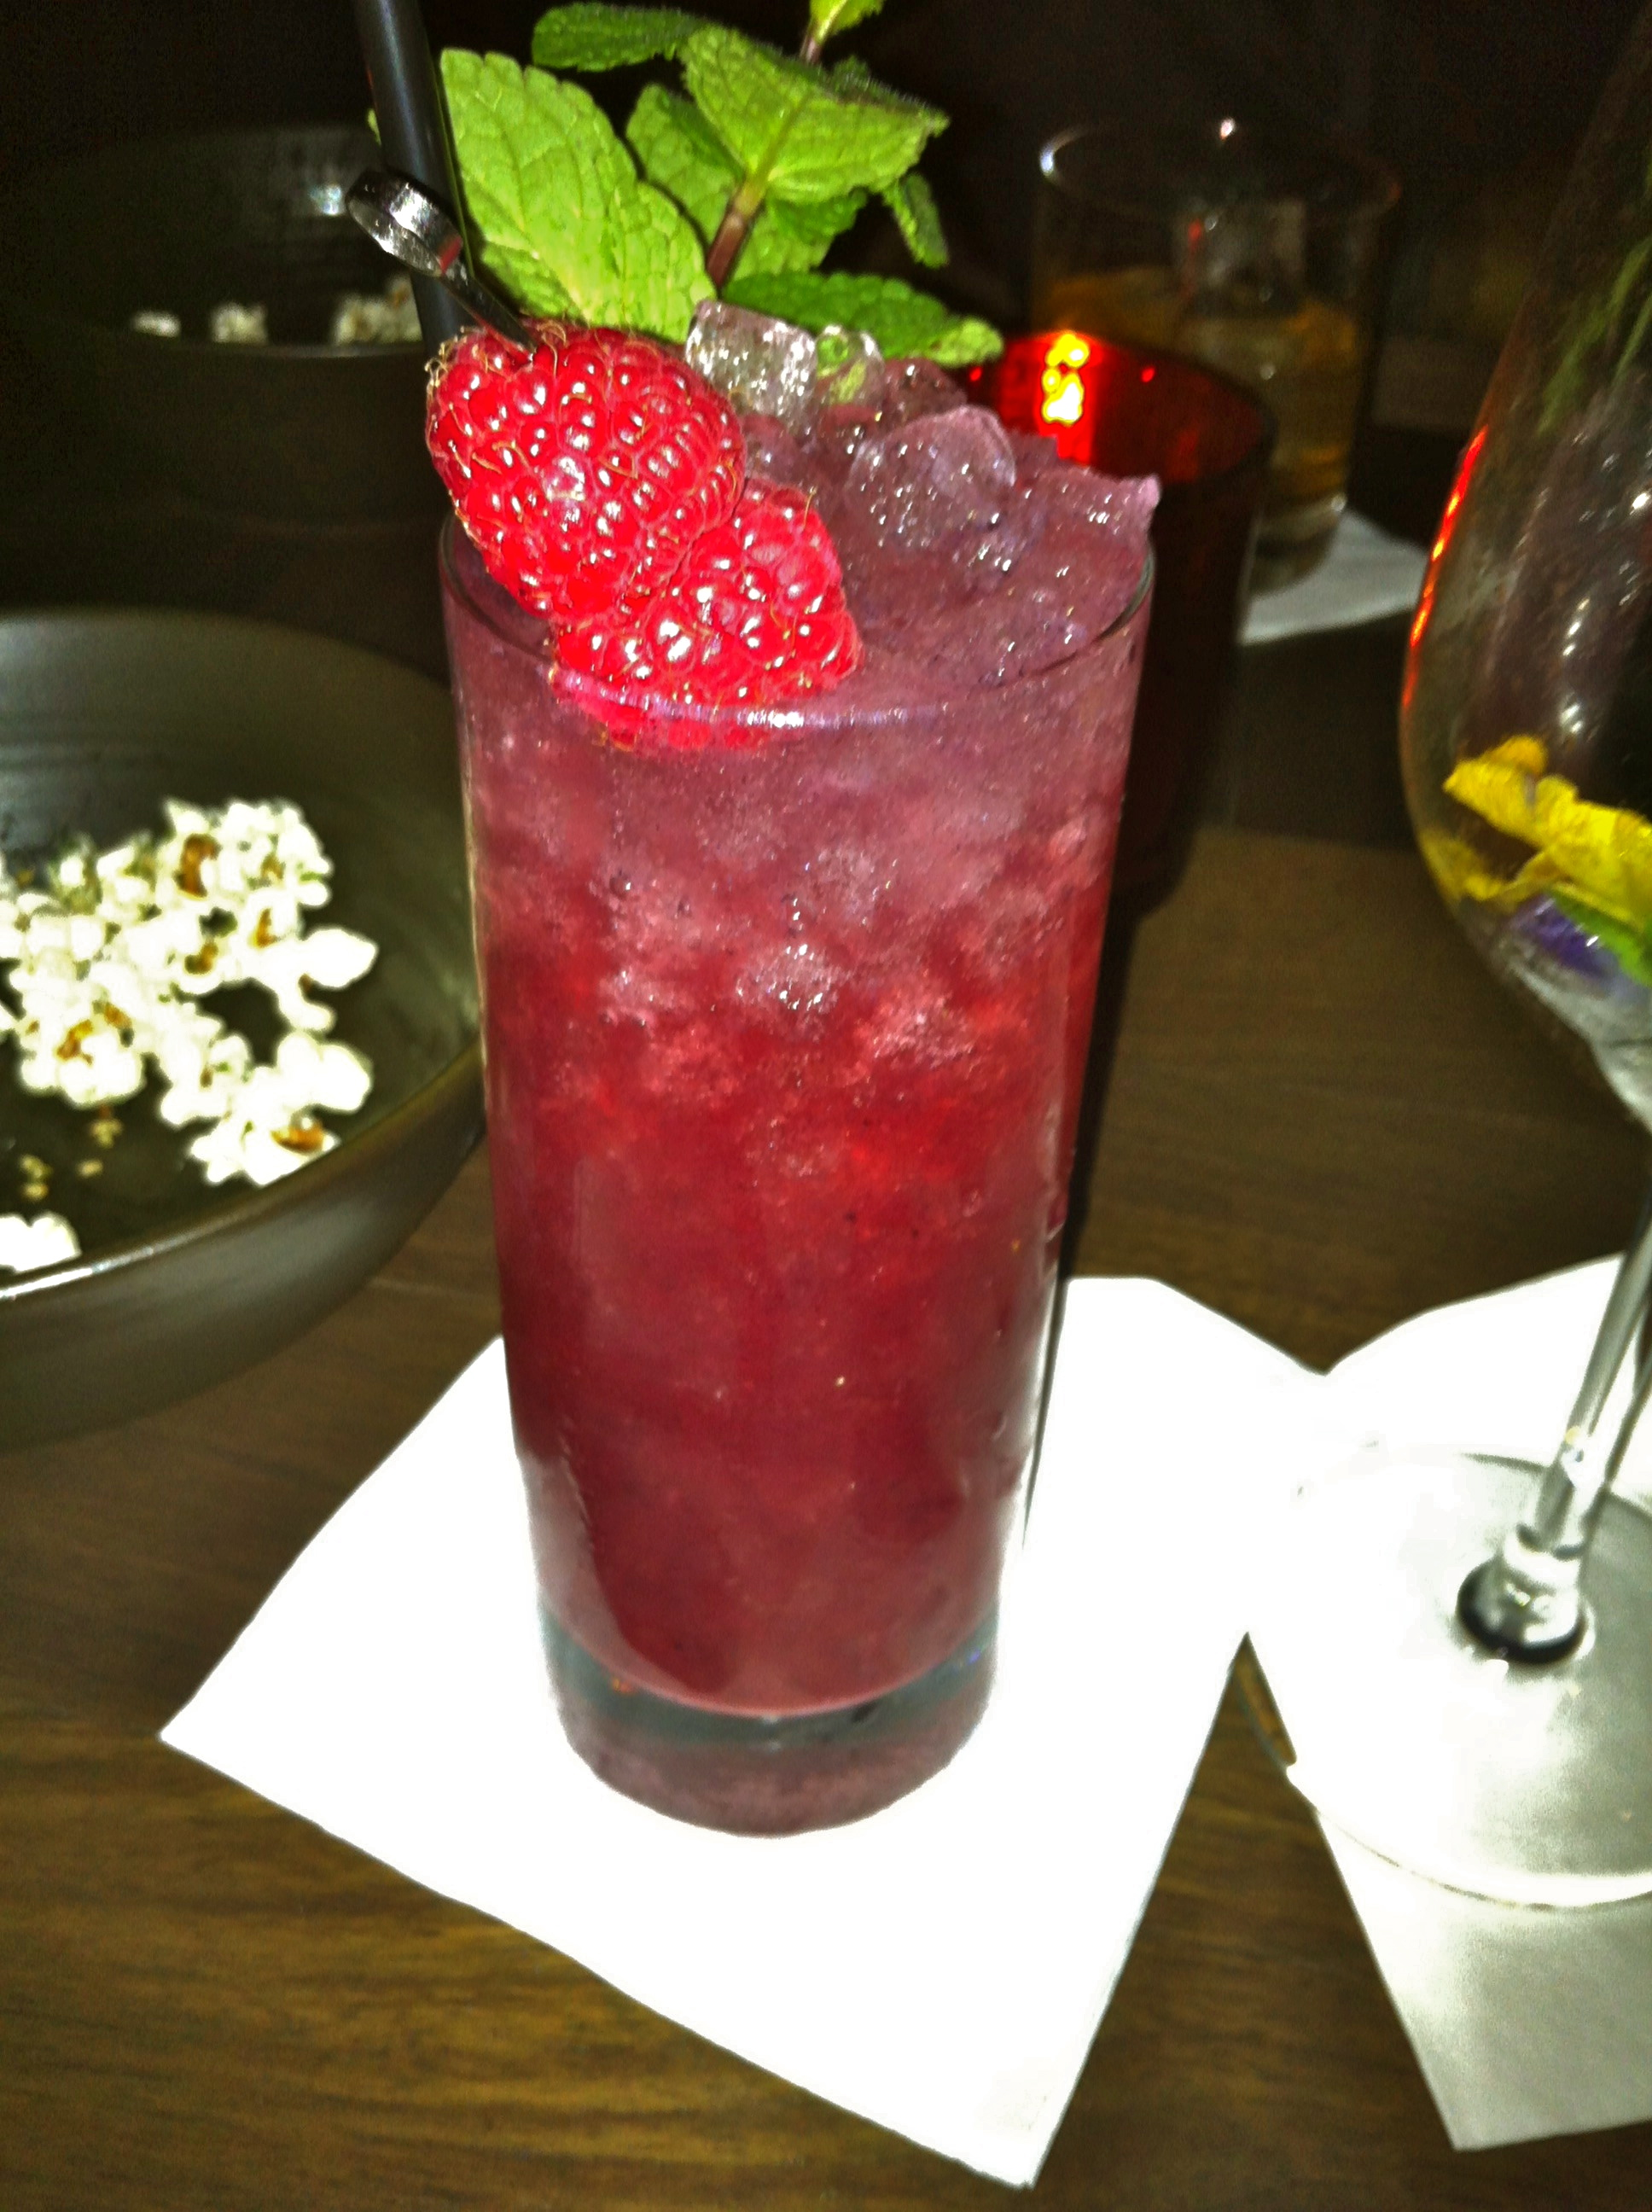 Cocktails in this city are never ceasing. Hold the sugar syrup appears to be a relatively common line in my dialect!